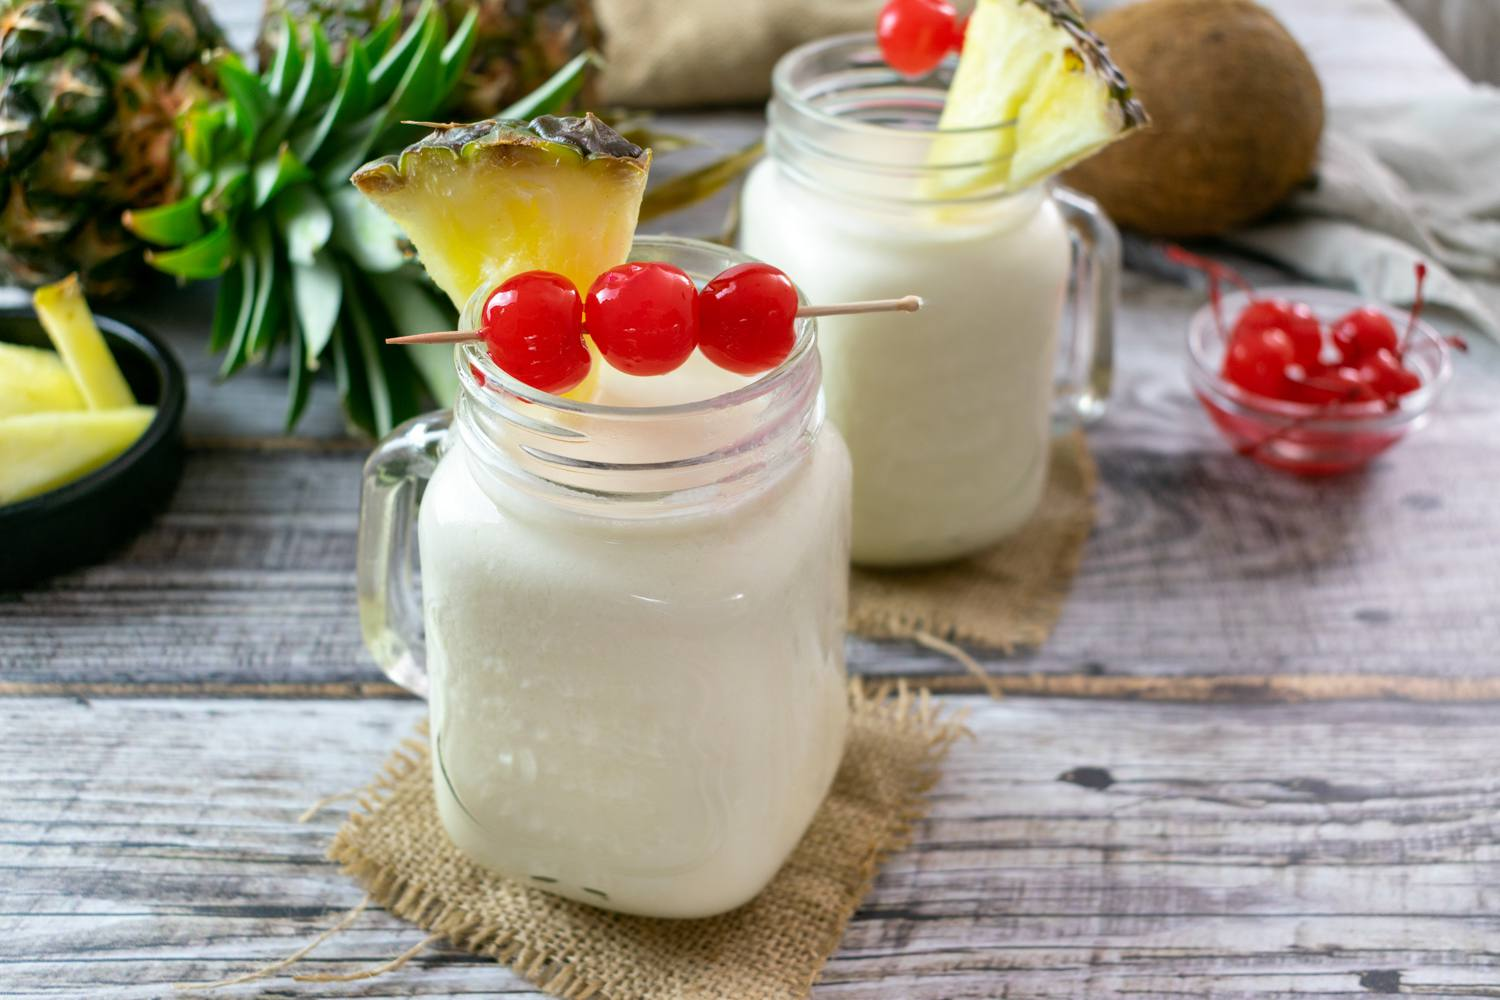 Two pina coladas with pineapple and cherry garnish